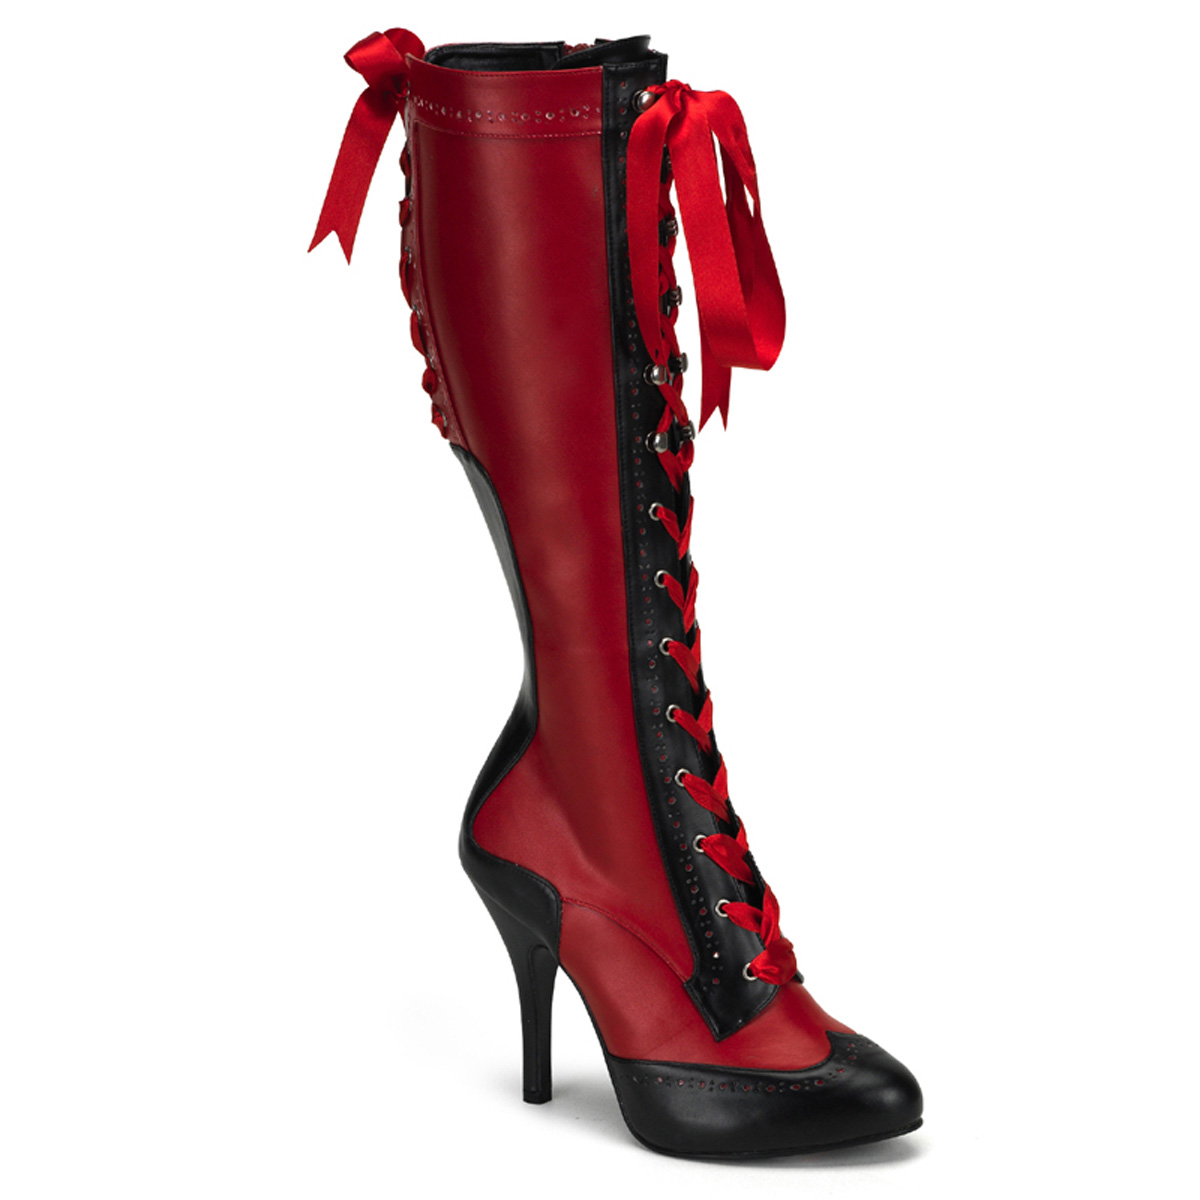 PLEASERs 4 1/2 inch Heel Ribbon Lace Up Knee Boot with Concealed Platform Red-Black Faux Leather at Sears.com